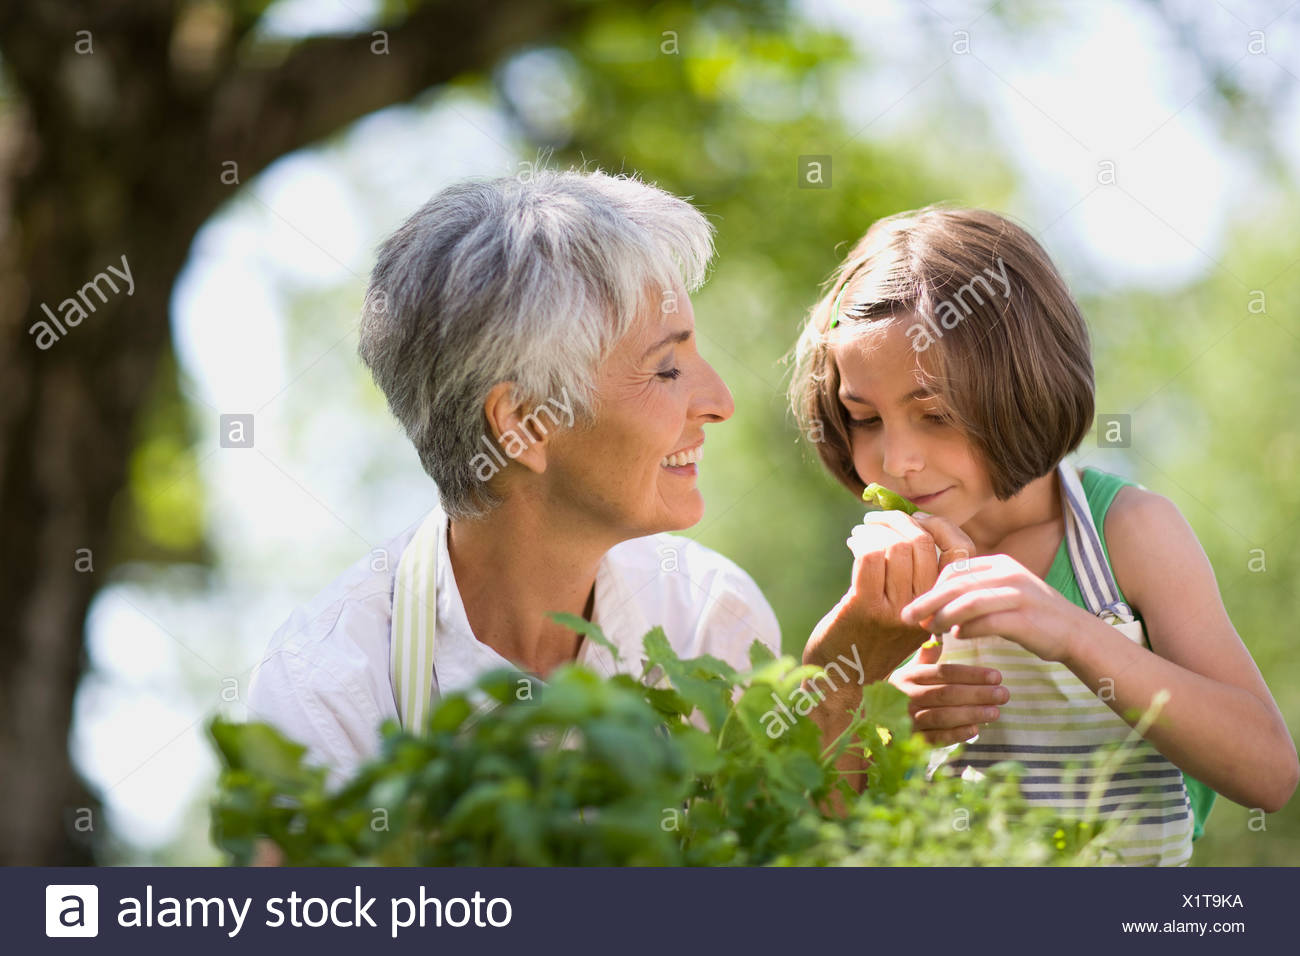 little girl examines something carefully - Stock Image